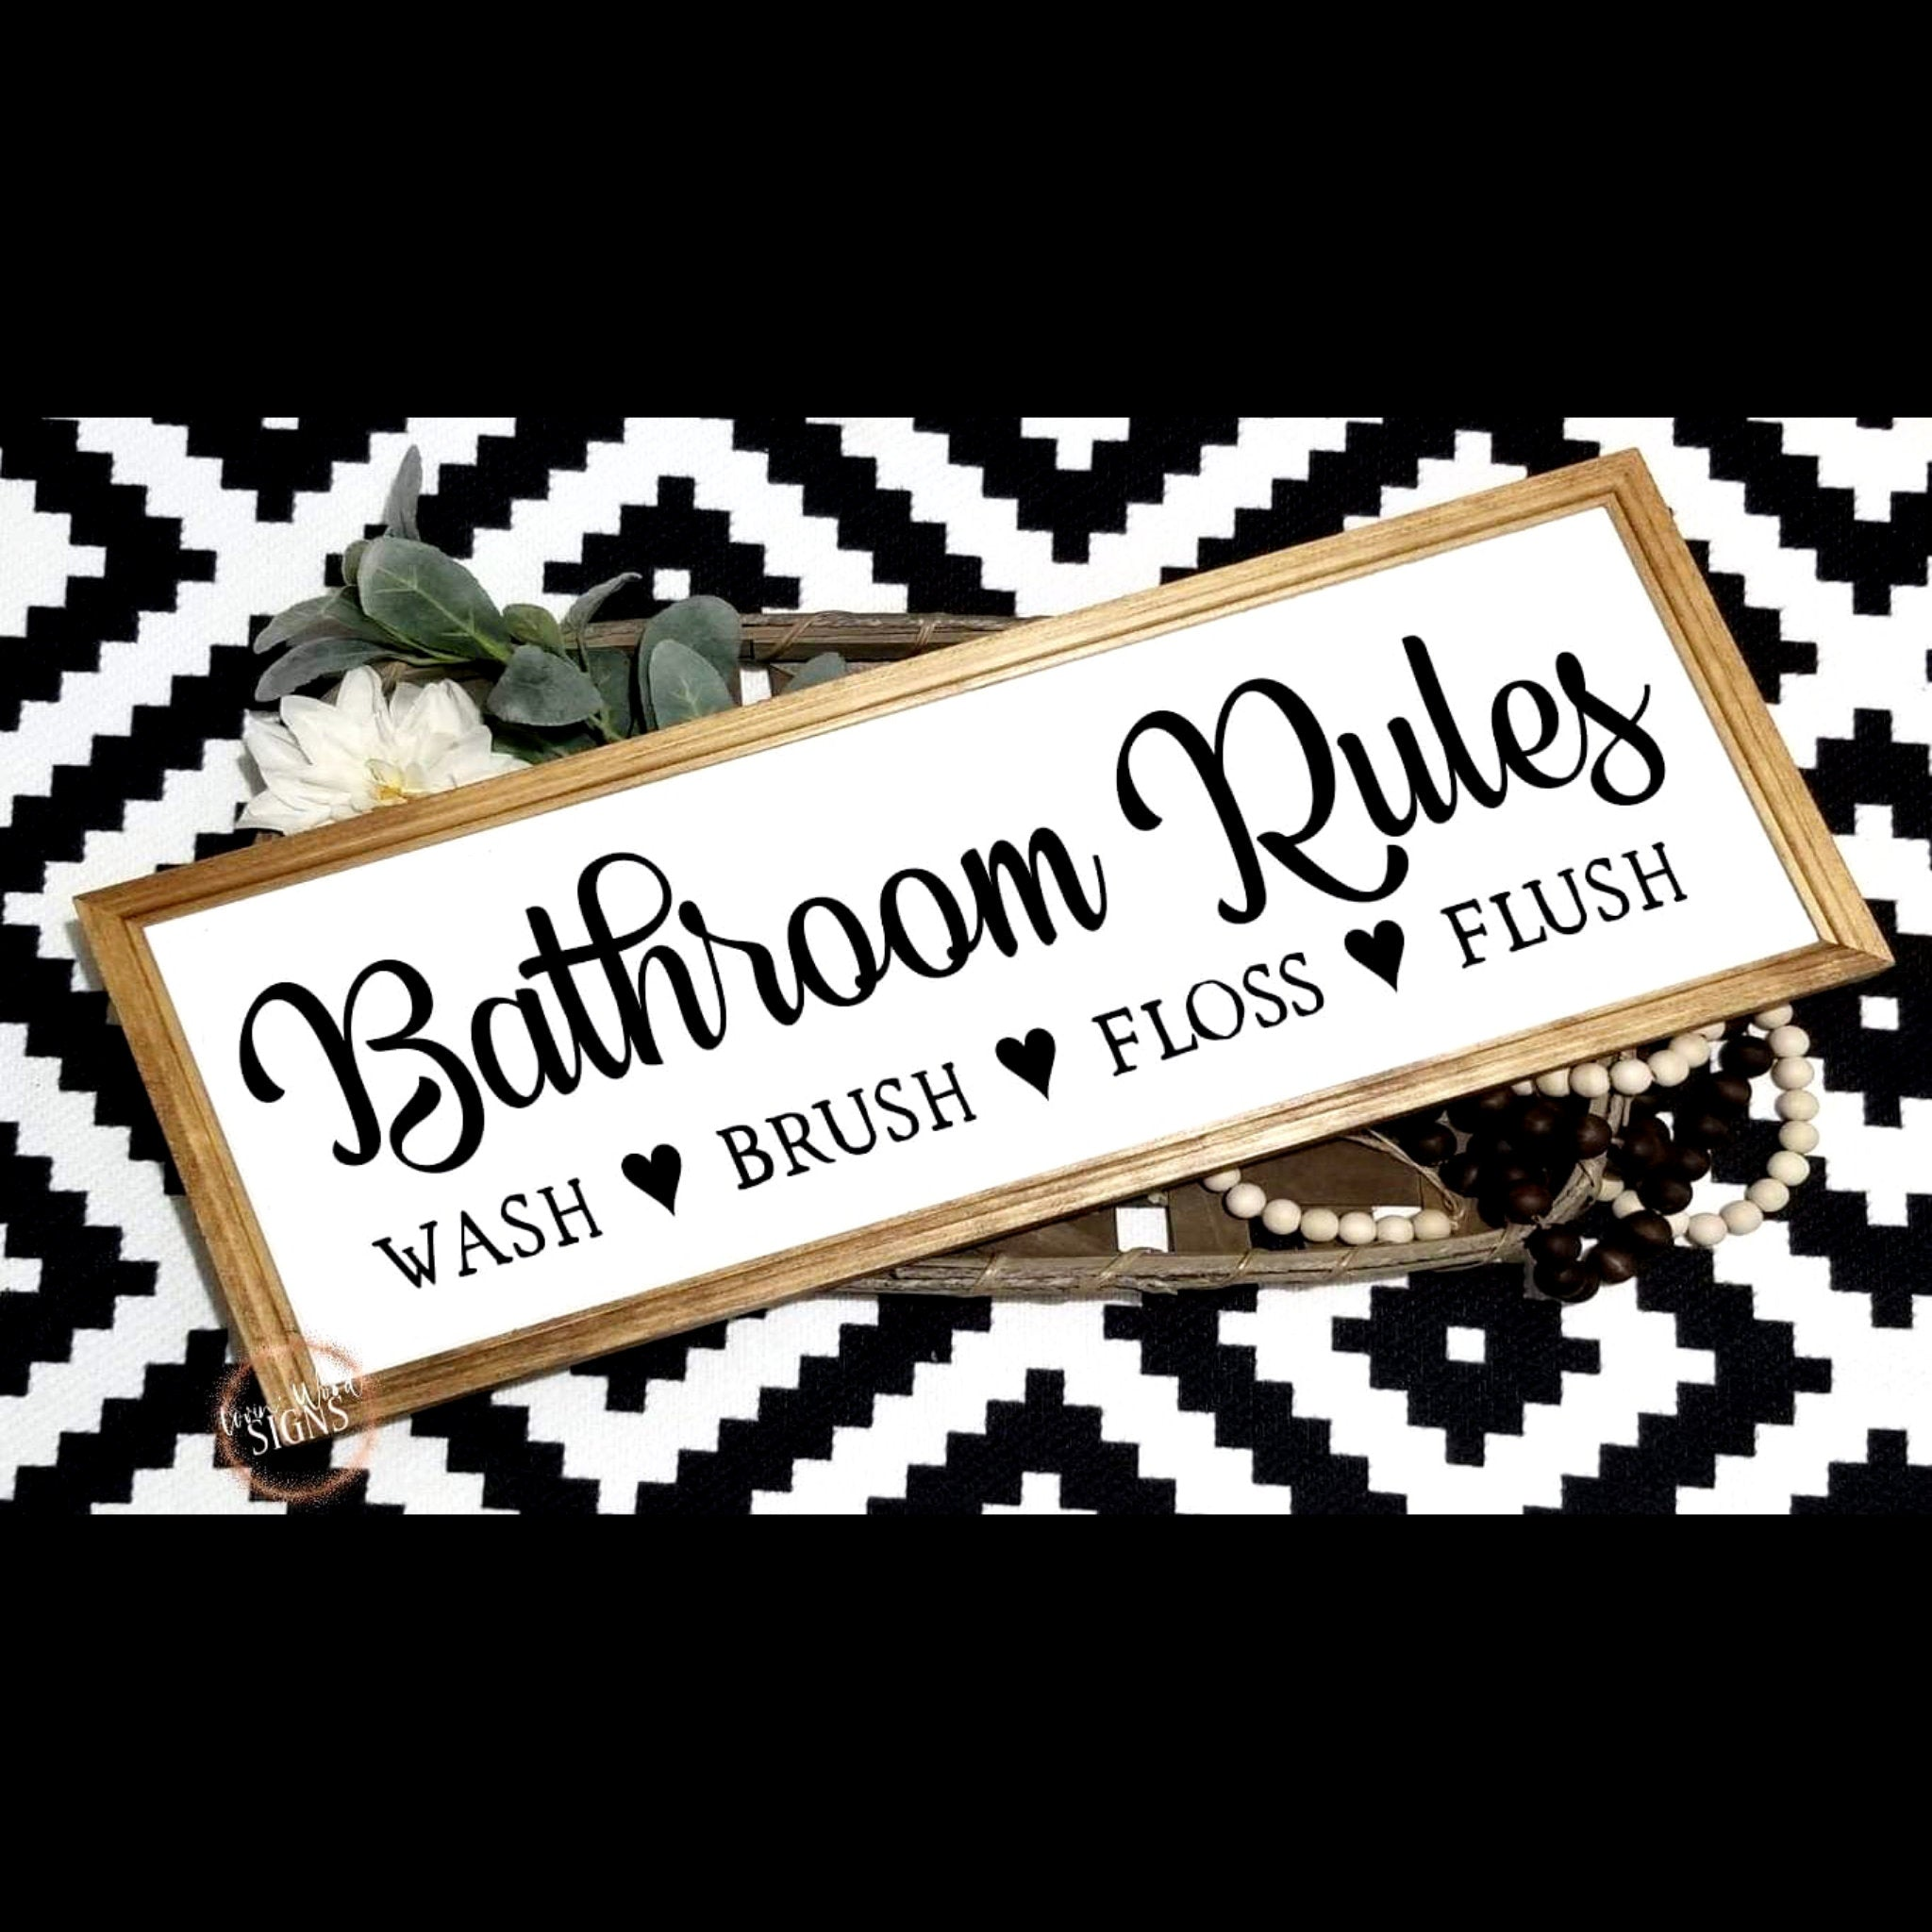 Bathroom rules sign horizontal